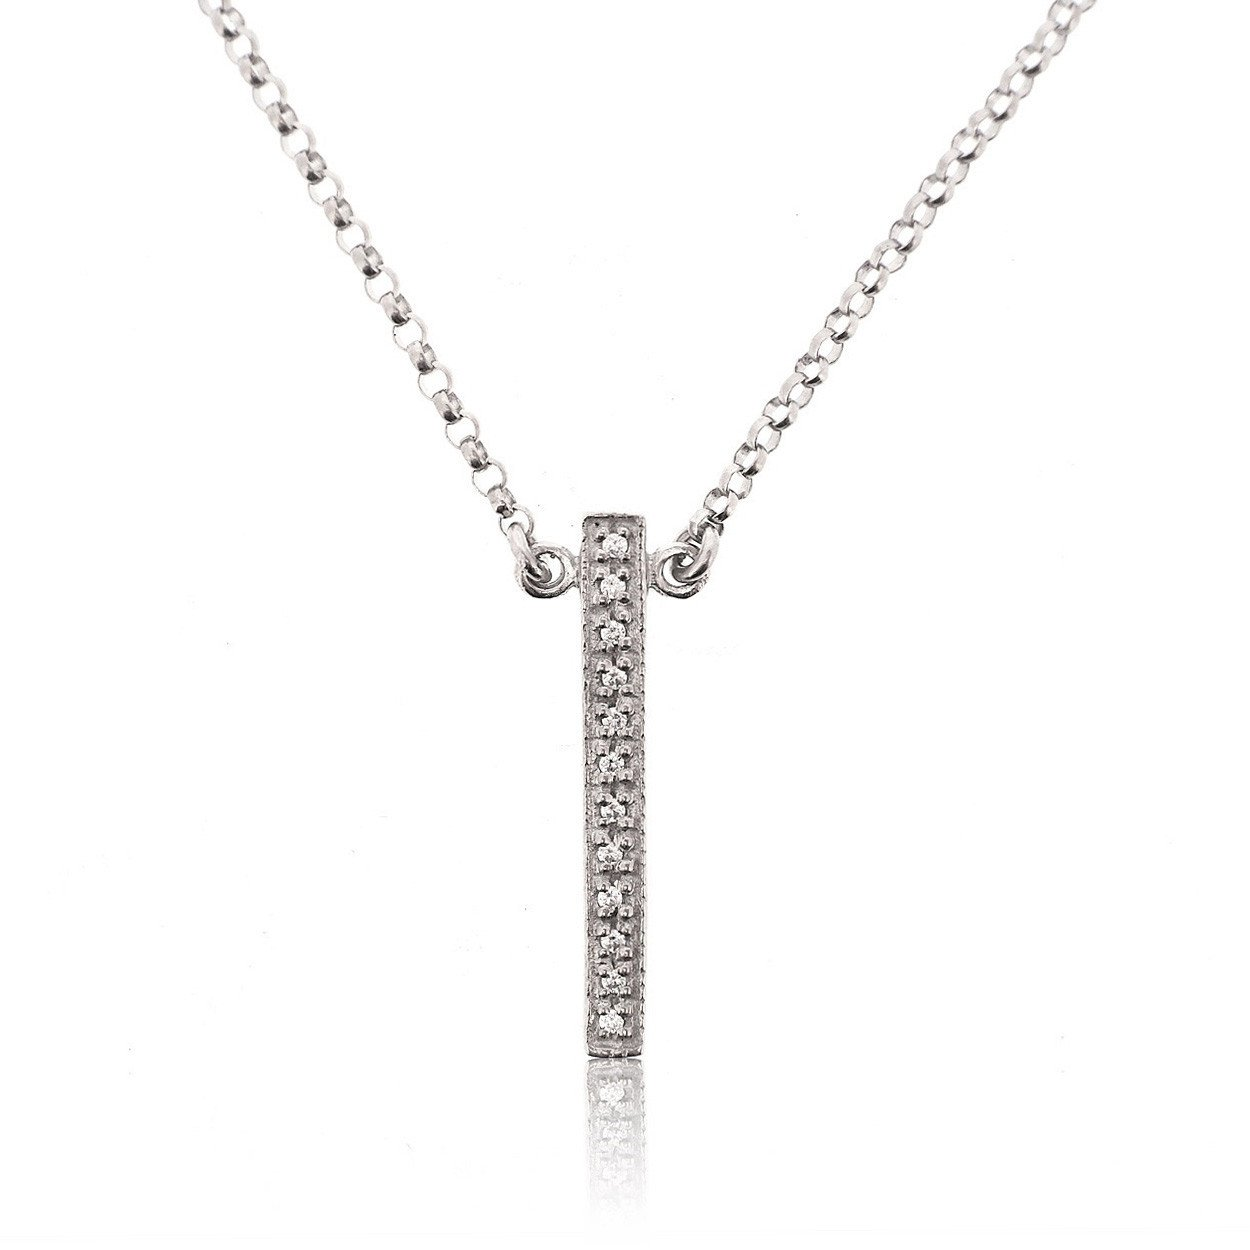 Perfect For Birthday Gifts For Women and Girls SOVATS Ballet Dancer Necklace For Women 925 Sterling Silver Rhodium Plated